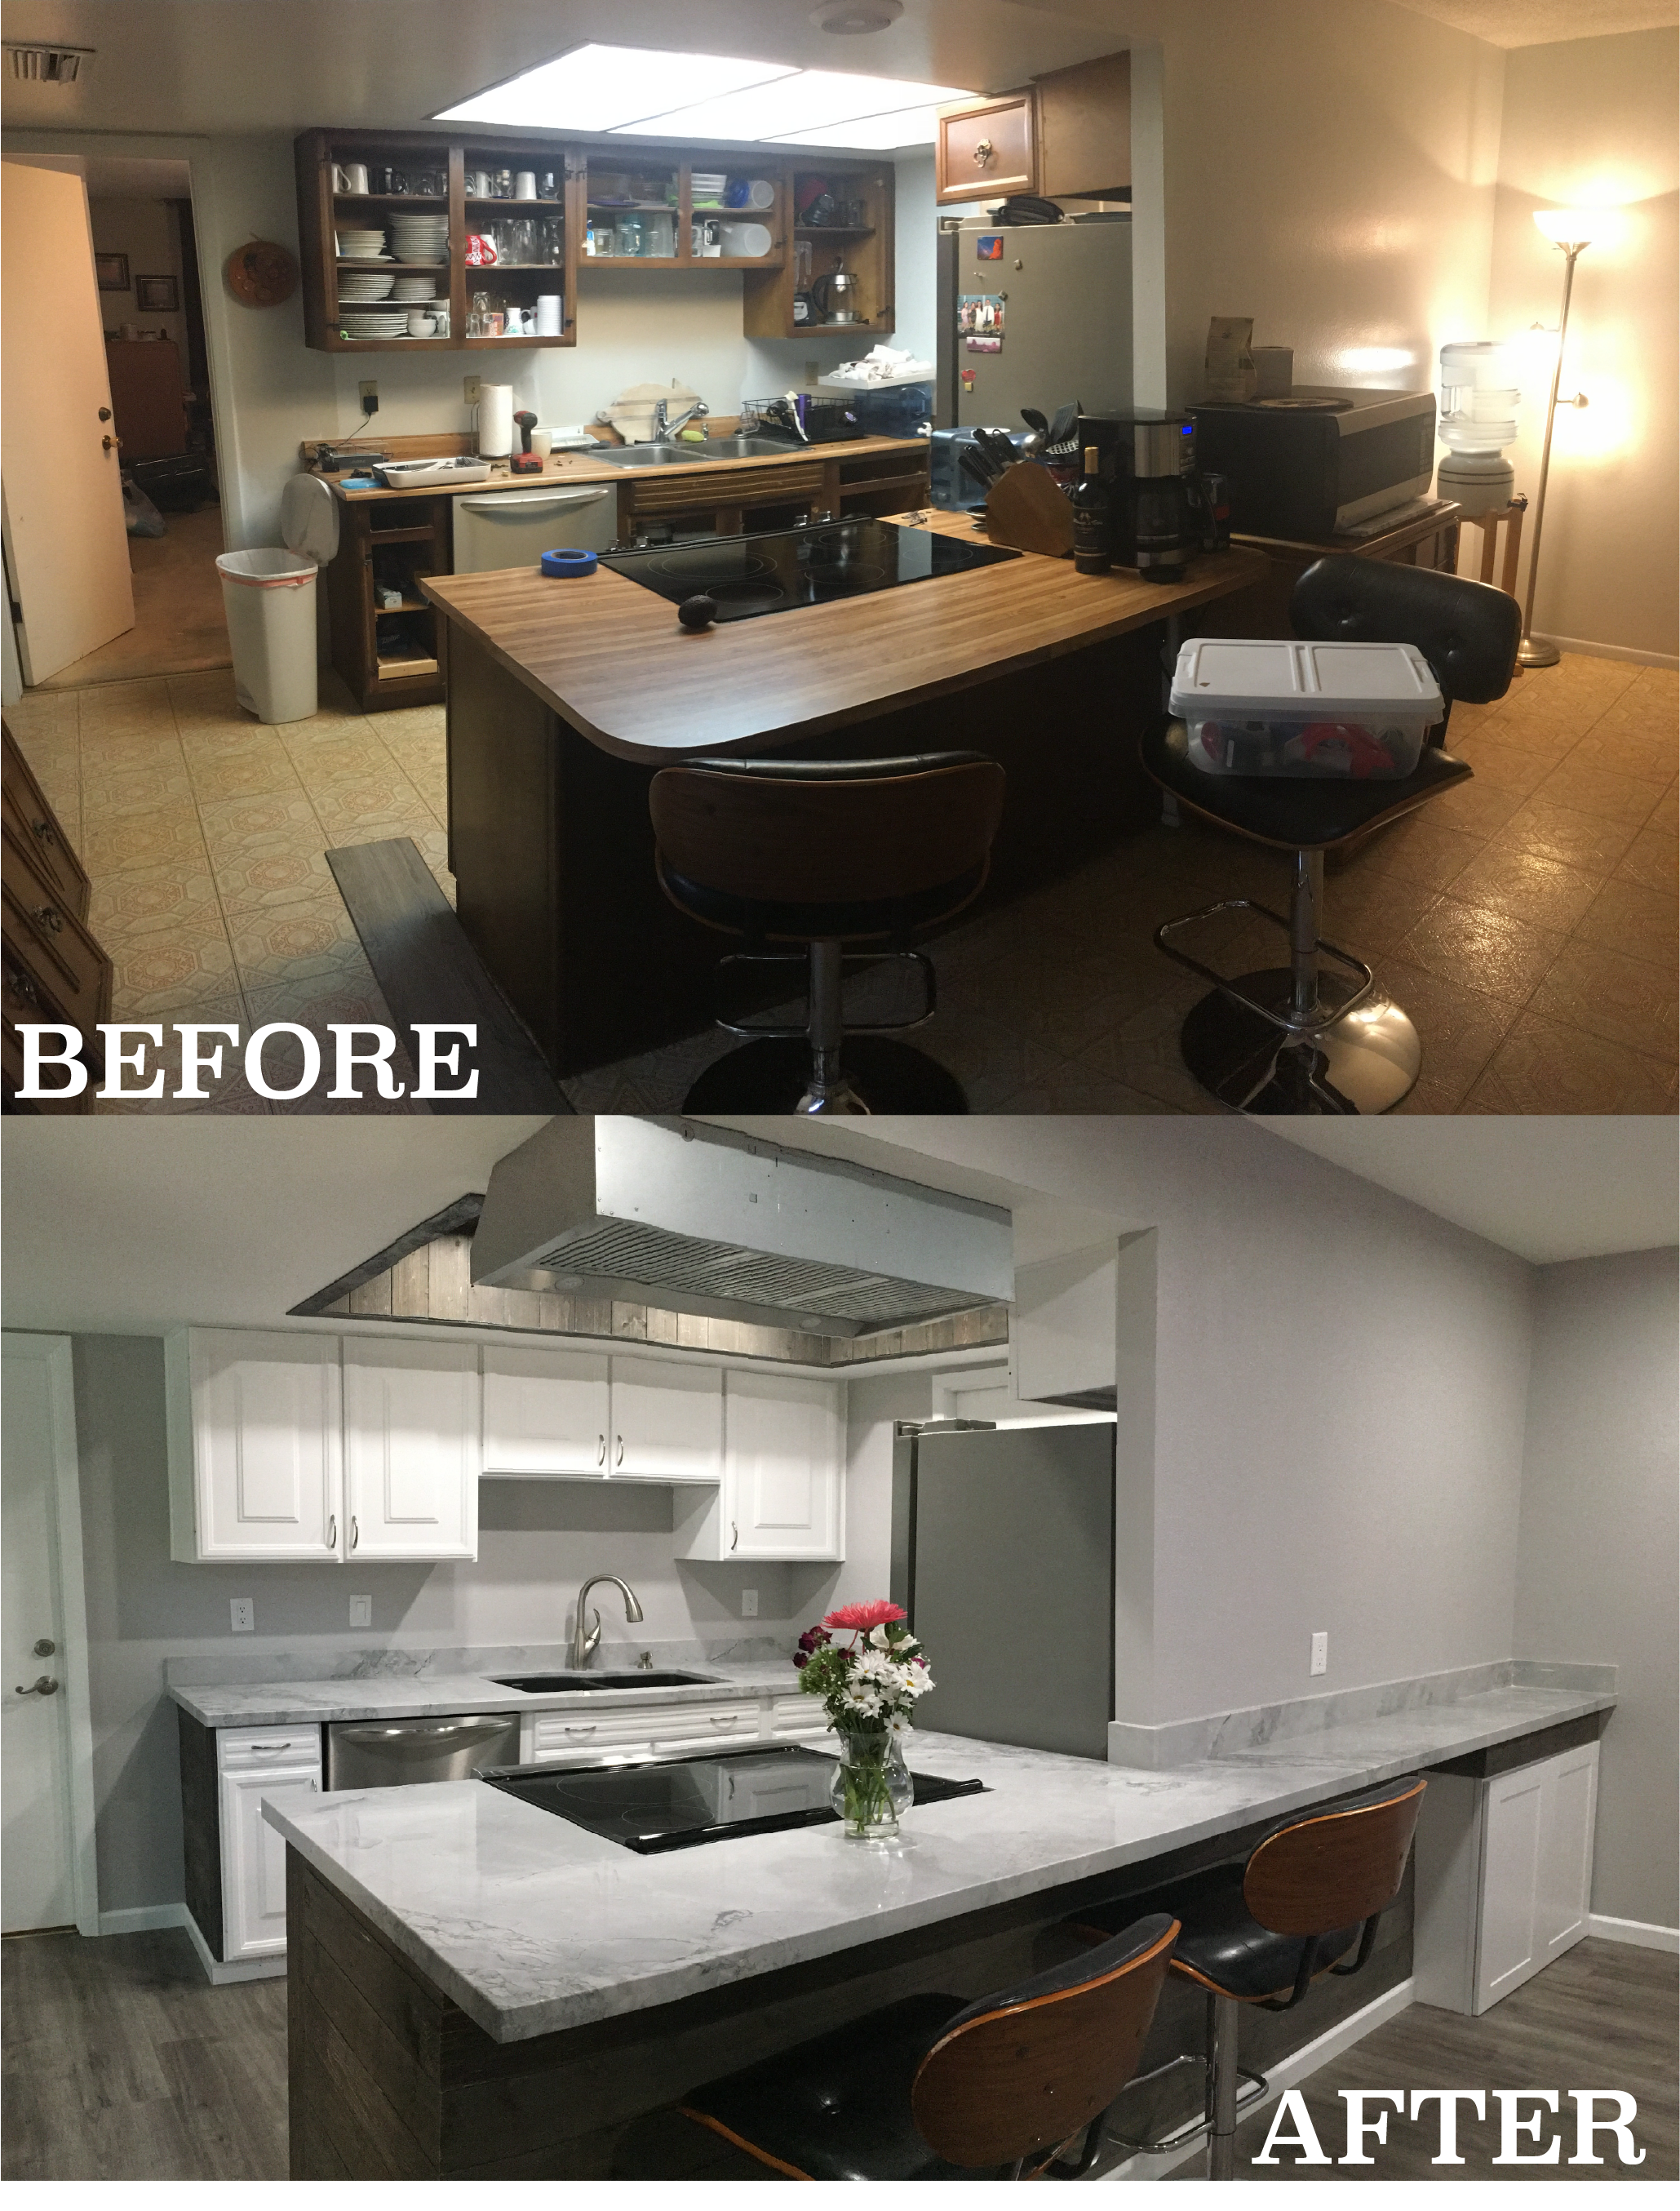 martha before and after kitchen